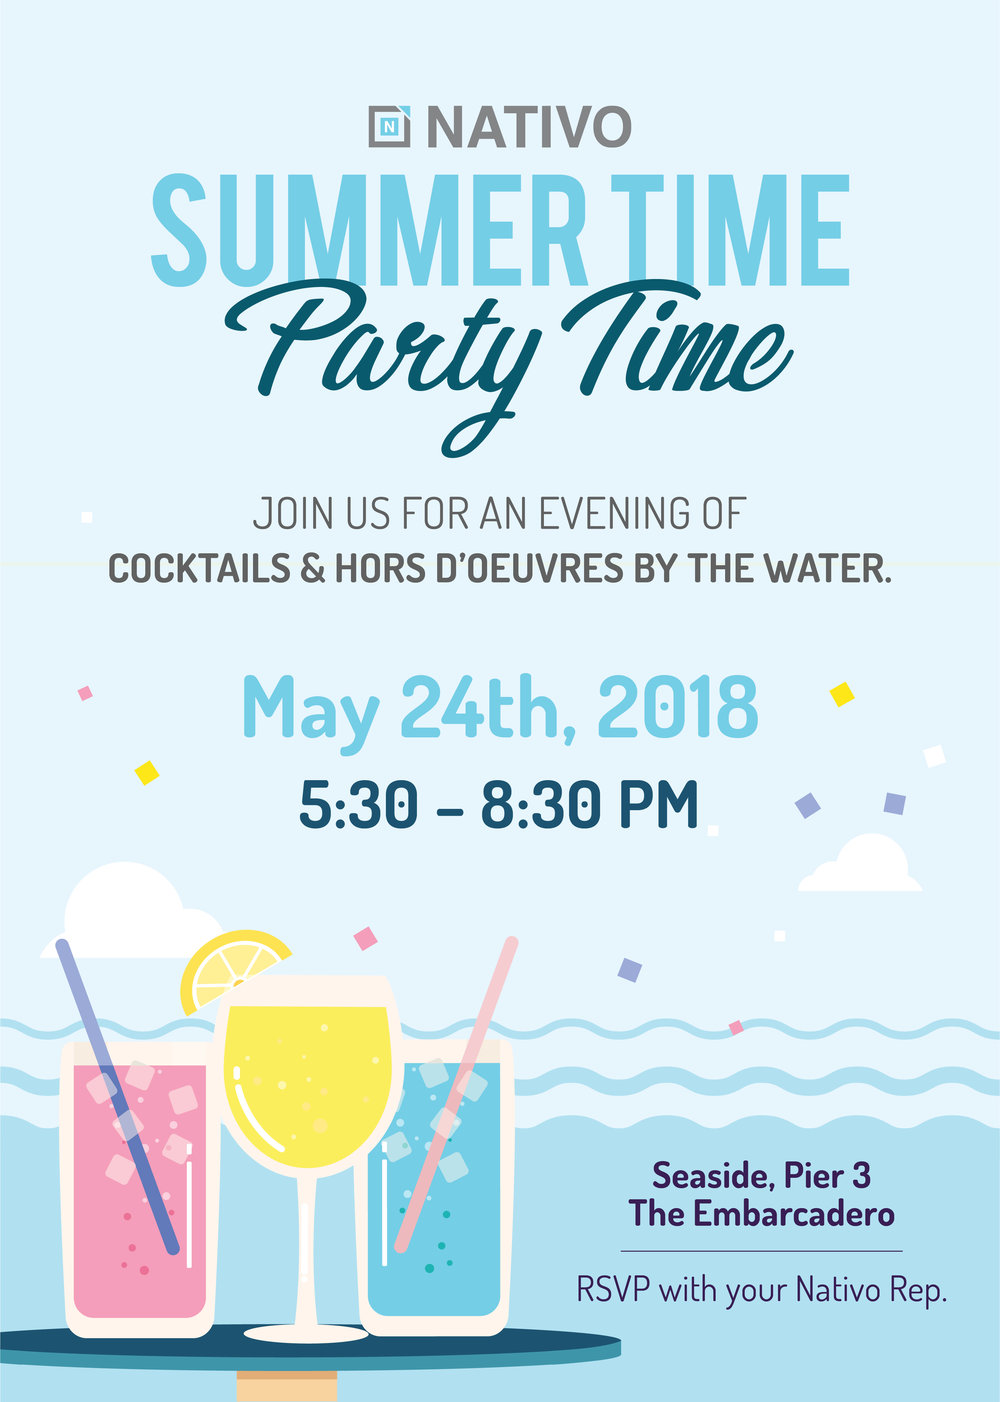 nativo-summer-party-time-sf